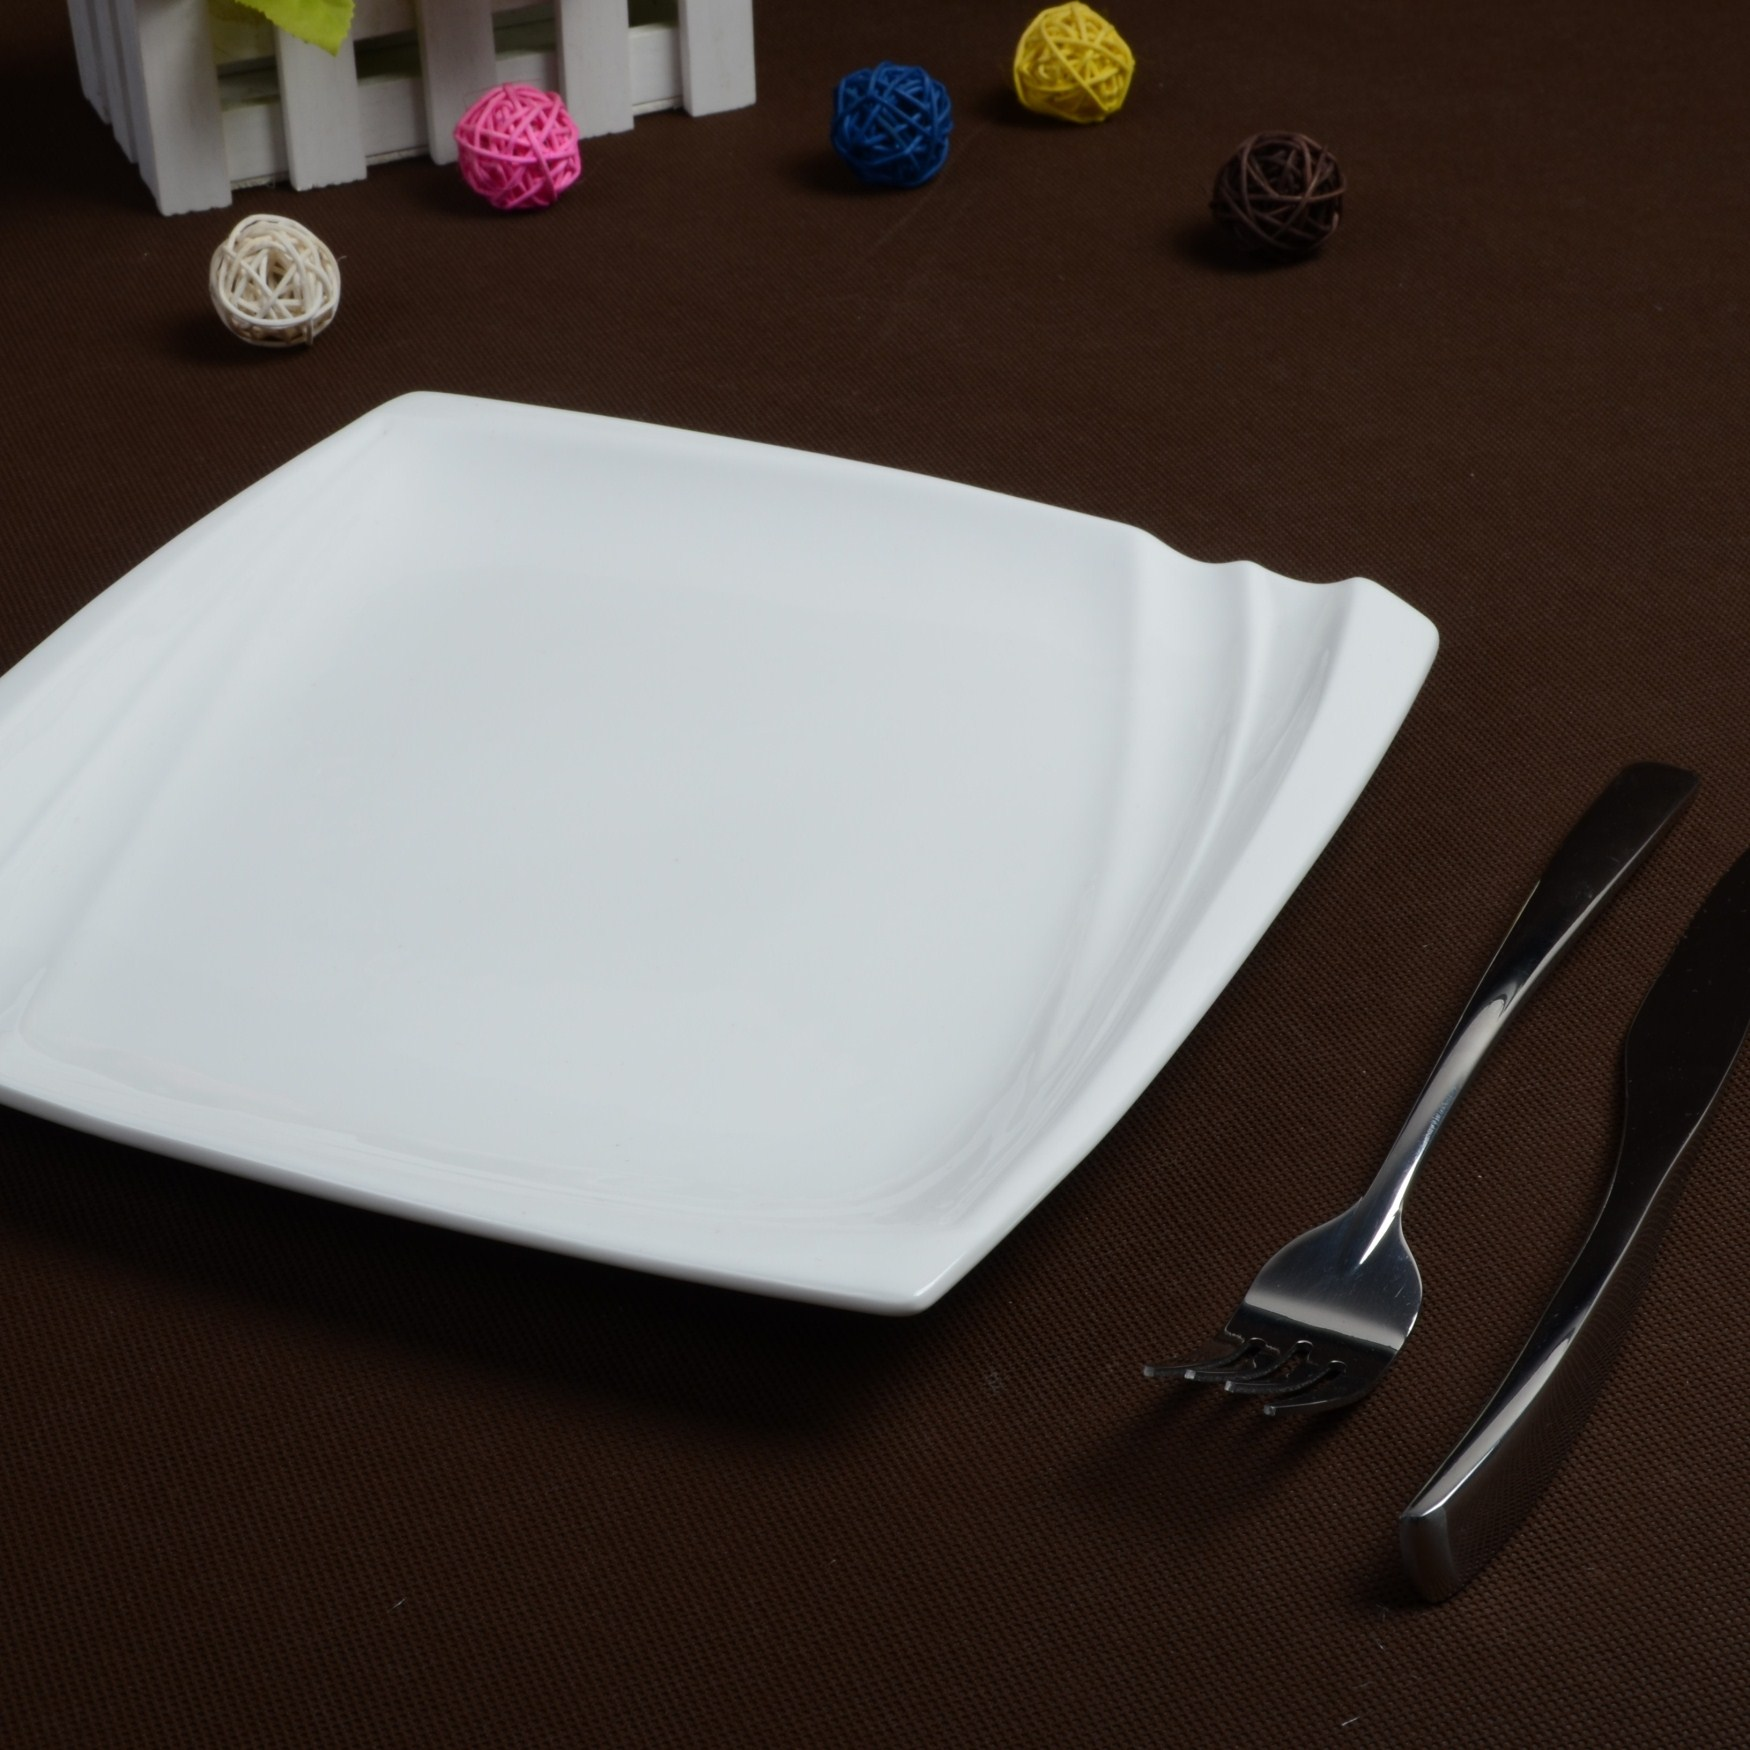 Kitchen utensils 8 10 pure white ceramic square flat plate western dish plate steak dish(China (Mainland))